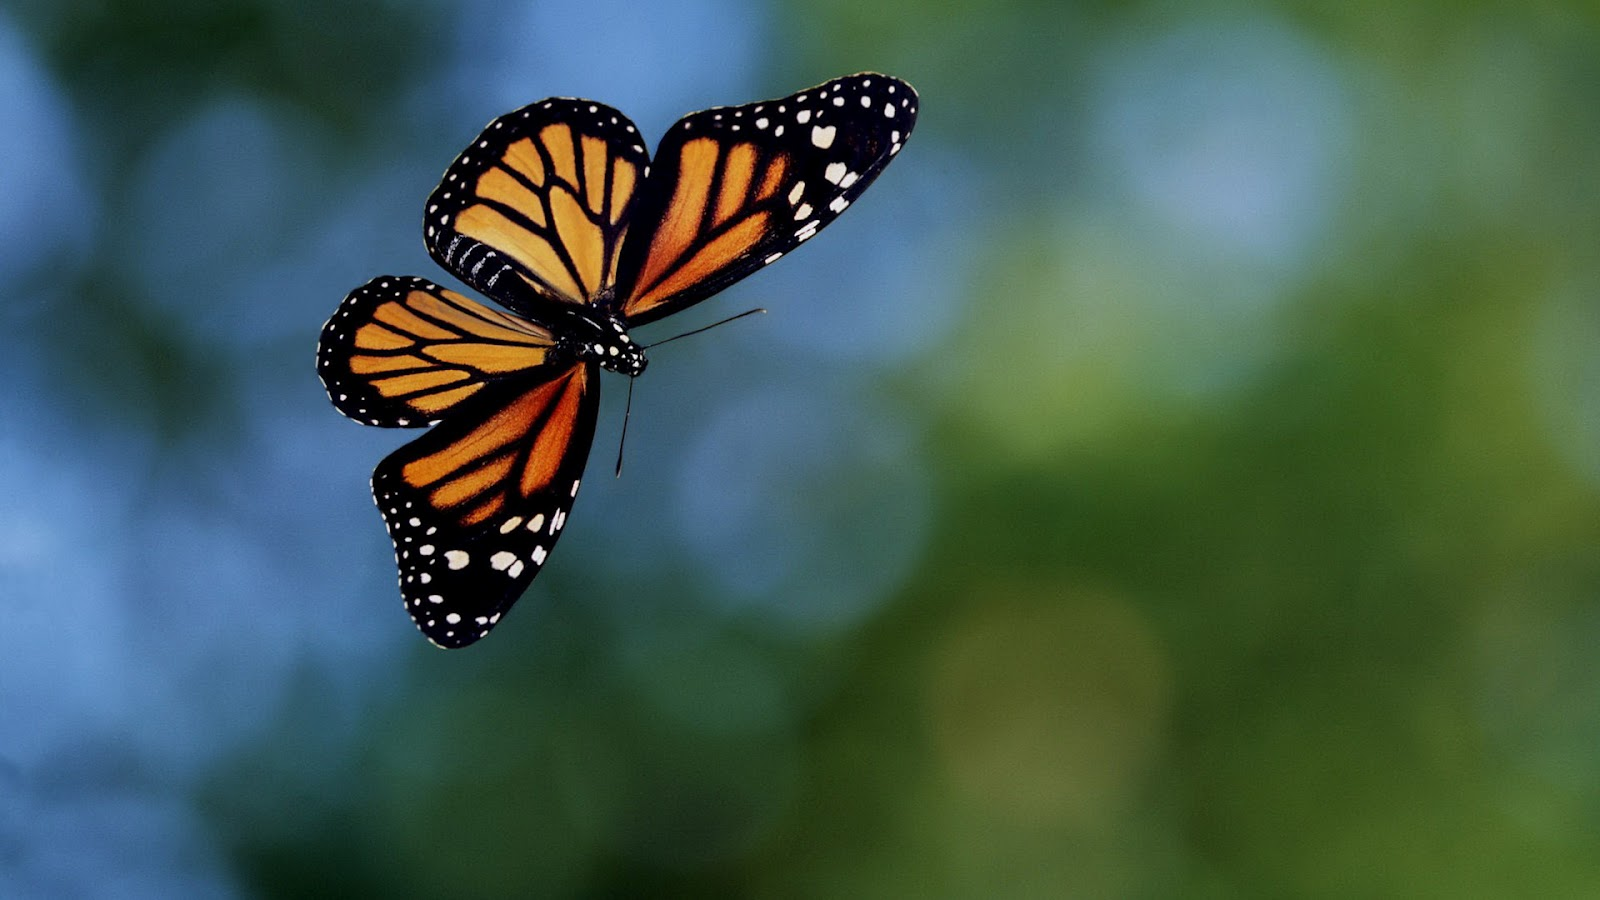 Flying Orange Black Butterfly Wallpaper Hd Animals Wallpapers